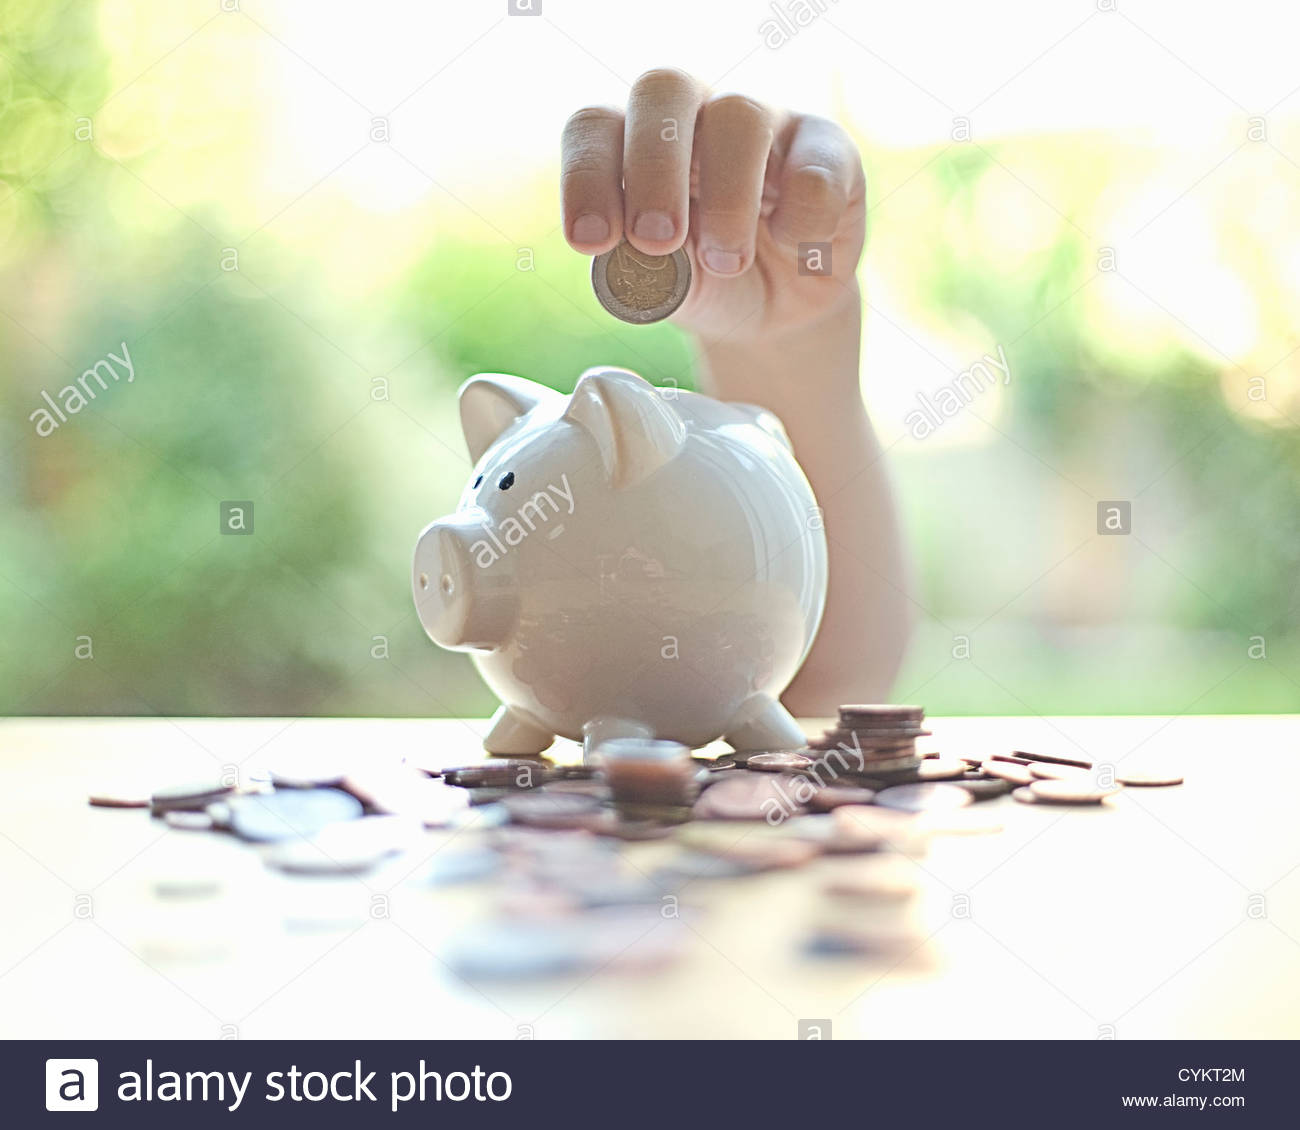 Hang putting coins in piggy bank - Stock Image